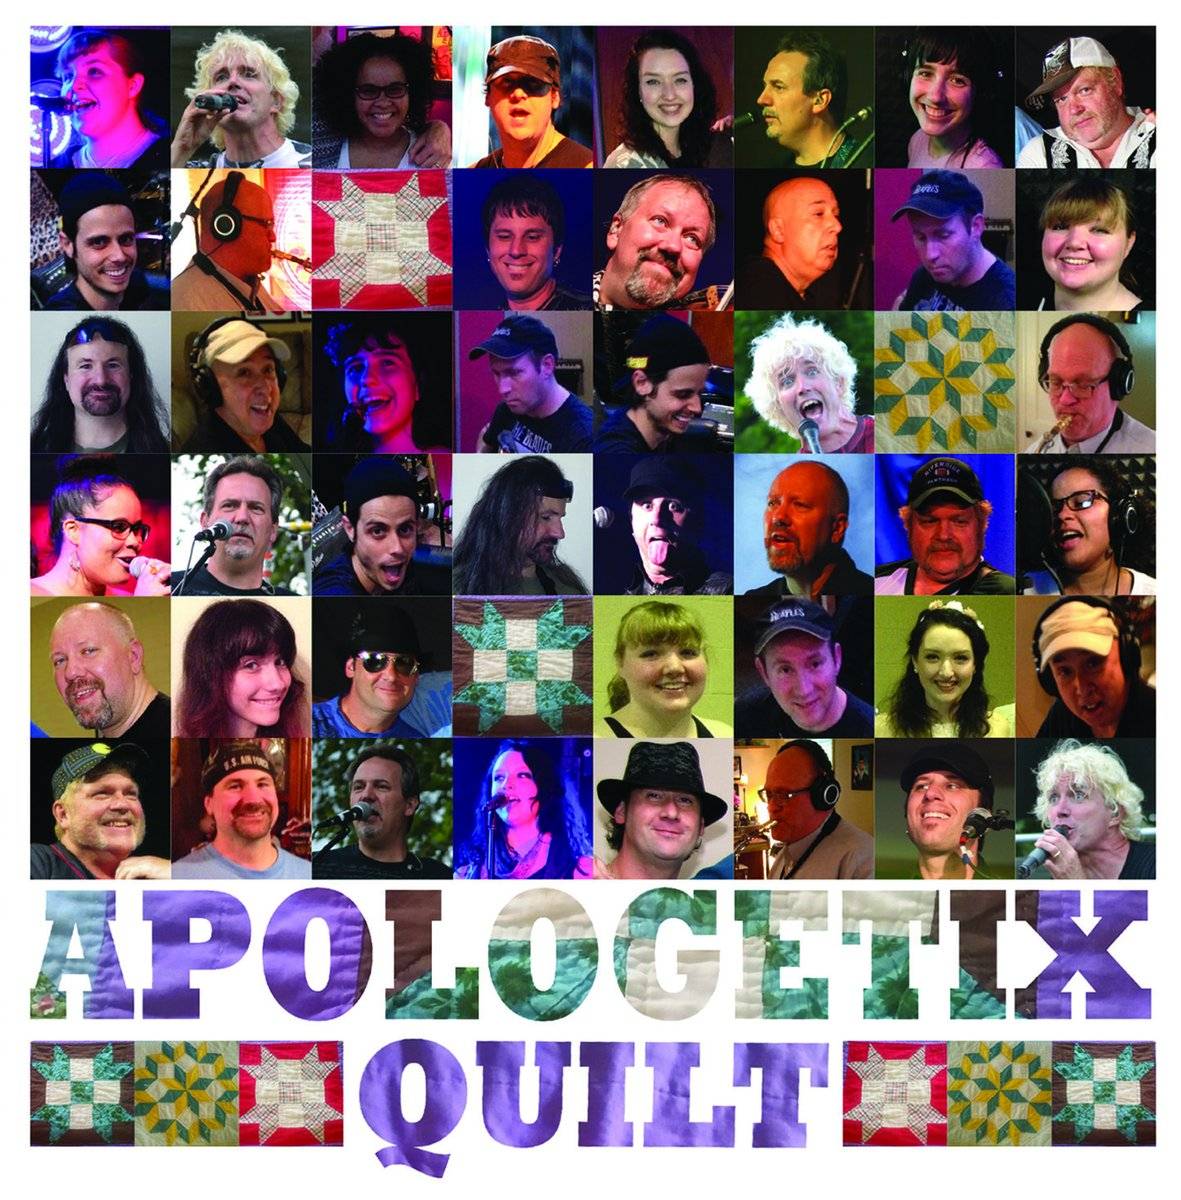 tlg-christian-news-music-quilt-by-apologetix-cover16923